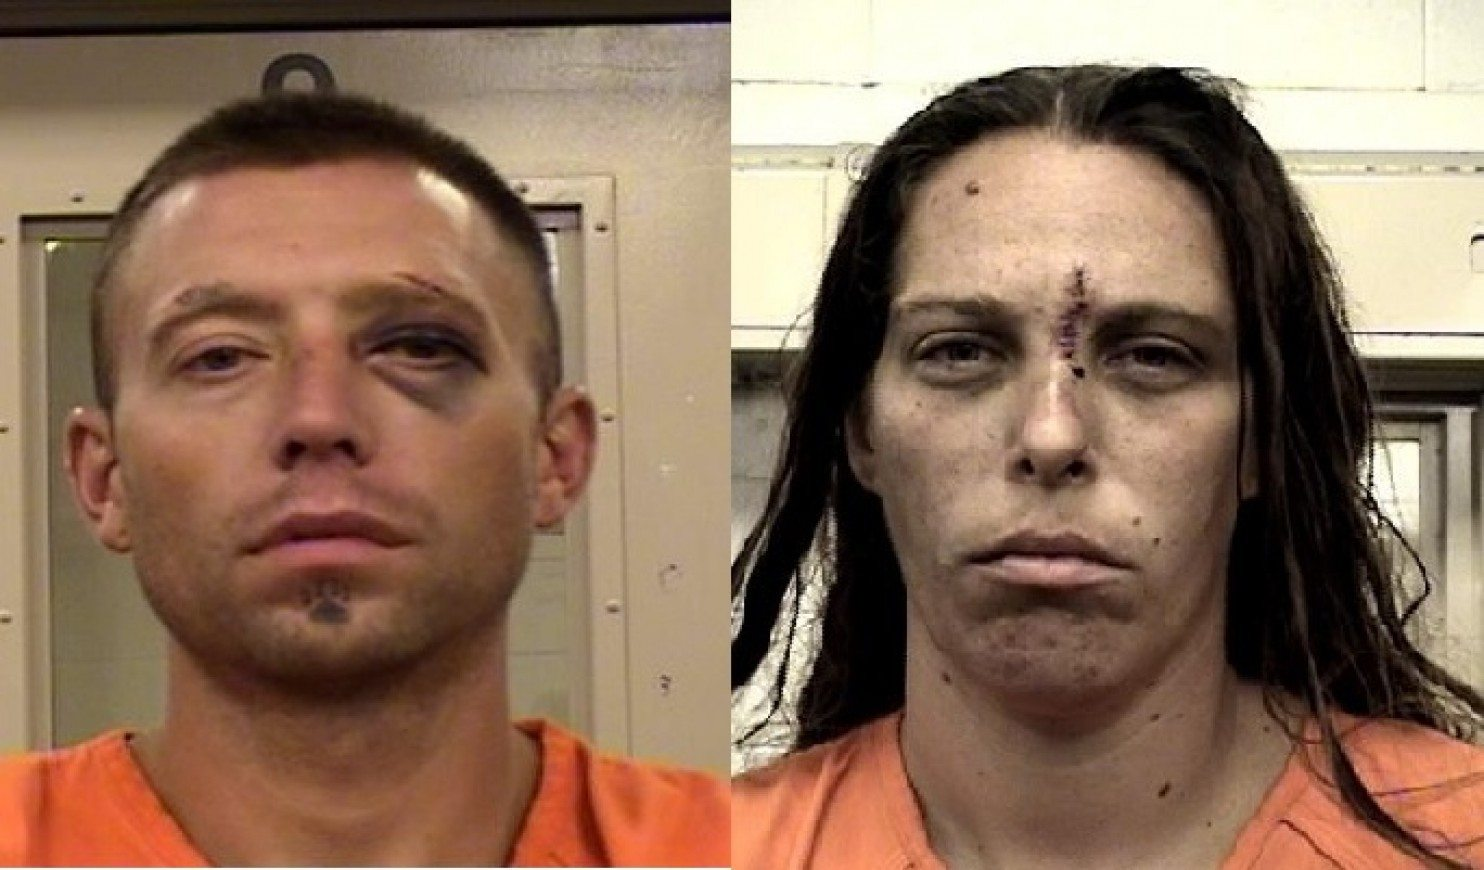 Fabian Gonzales and Michelle Martens were arrested Wednesday in Albuquerque. (Bernalillo County Metropolitan Detention Center)